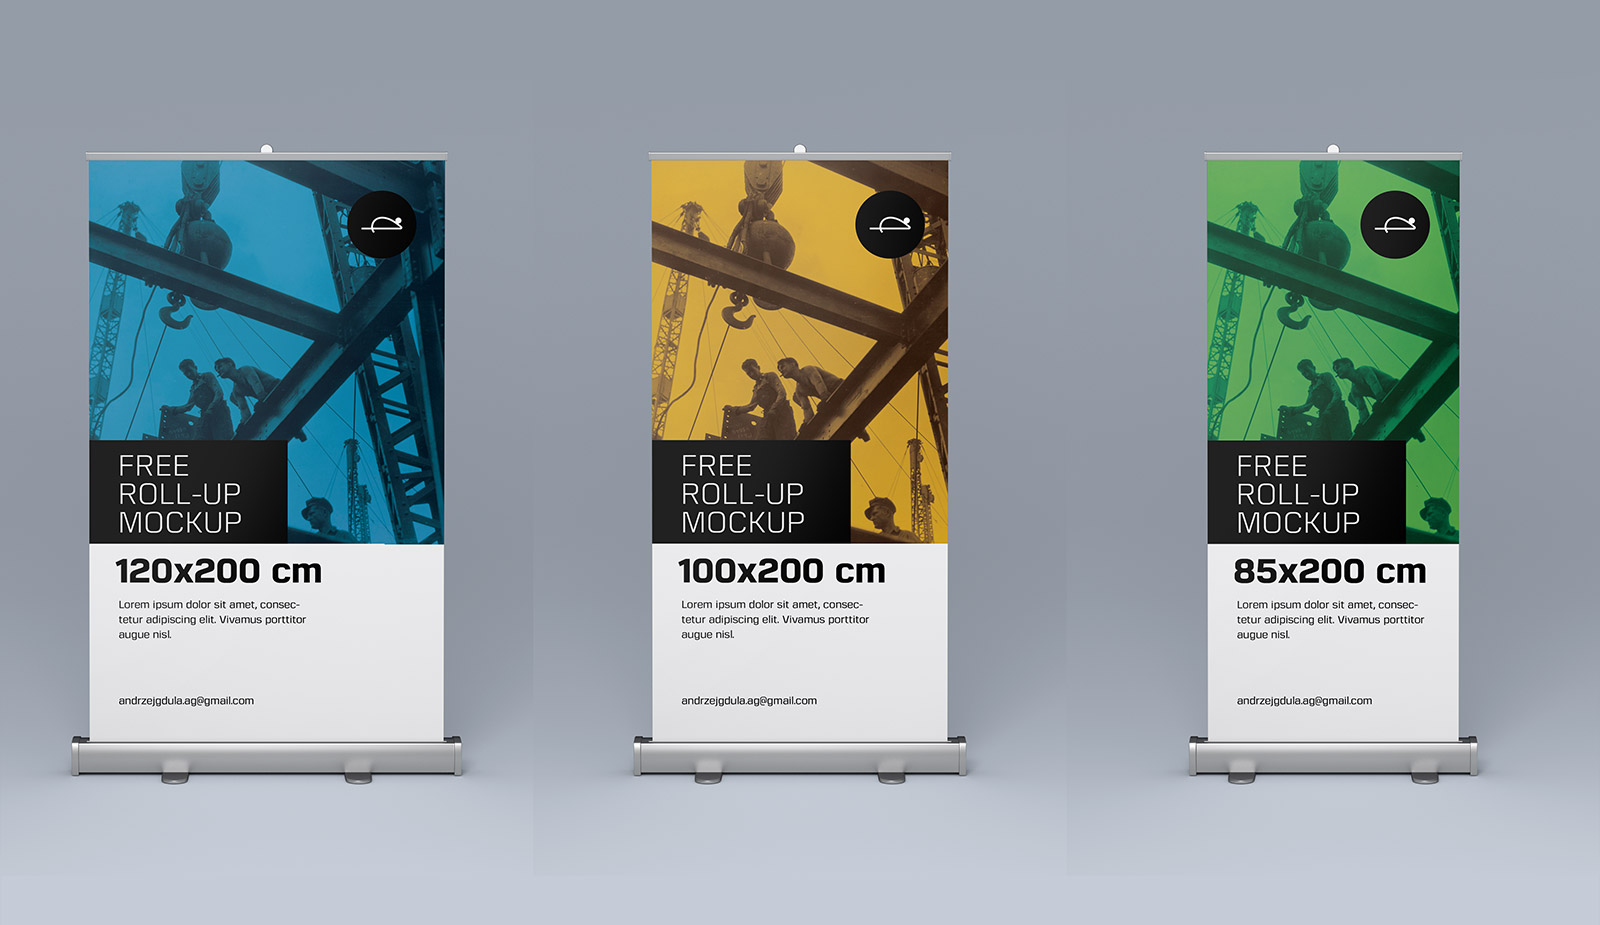 Free-Rollup-Banner-Stand--Mockup-PSD-3